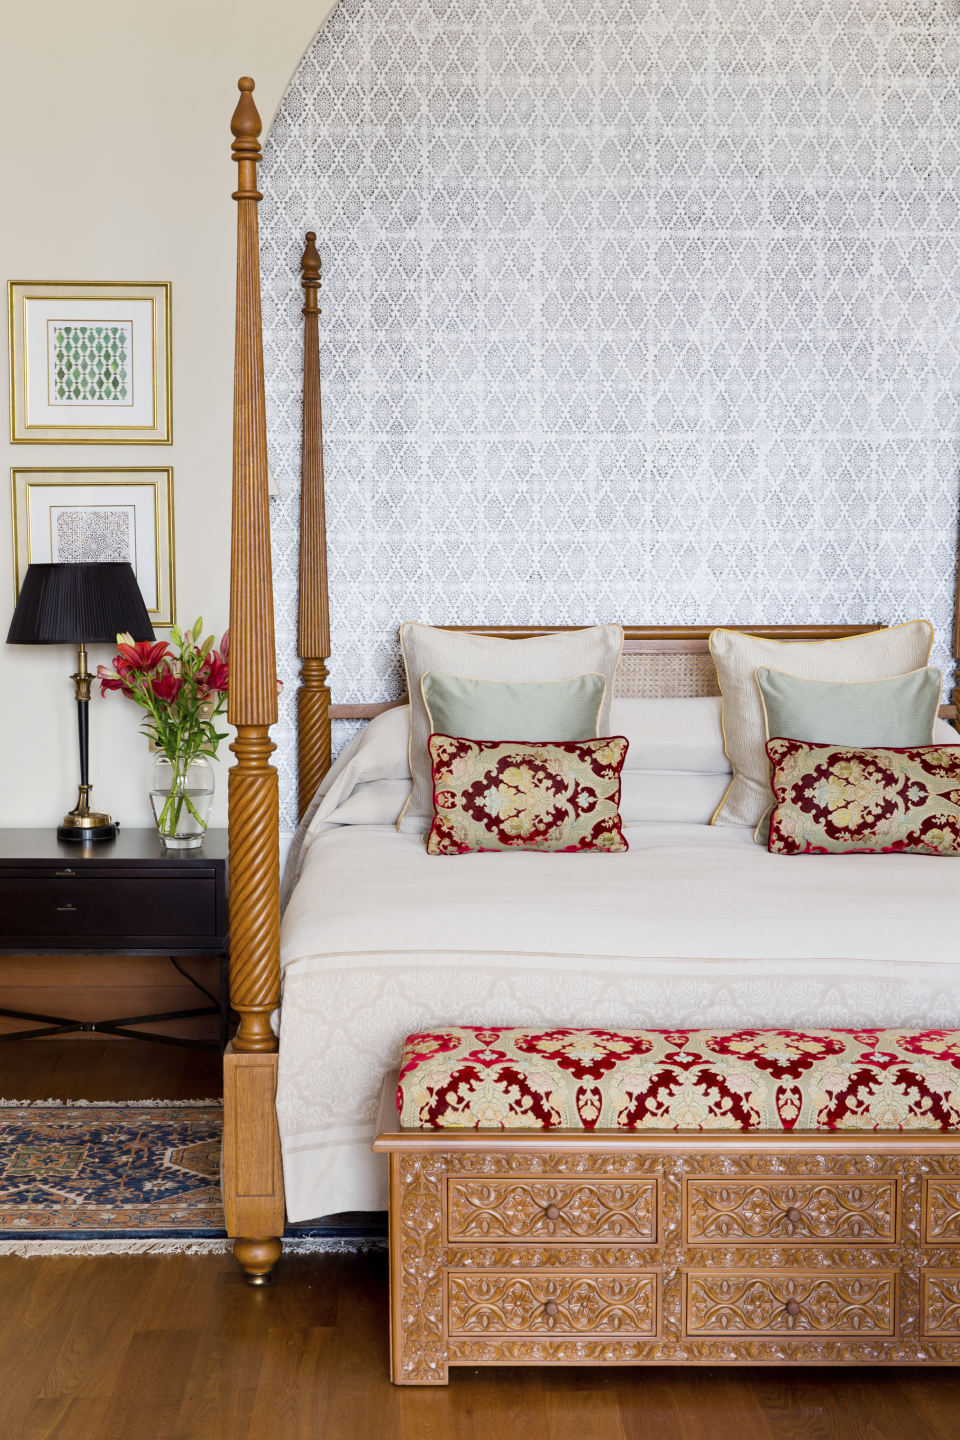 """<p><strong>Set the scene.</strong><br> The Indian family group, known for its intuitive service and up-close palace views of landmarks such as the Taj Mahal, resurrect the refined elegance of <a href=""""https://www.cntraveler.com/hotels/morocco/morocco/marrakech/la-mamounia-marrakech?mbid=synd_yahoo_rss"""" rel=""""nofollow noopener"""" target=""""_blank"""" data-ylk=""""slk:La Mamounia"""" class=""""link rapid-noclick-resp"""">La Mamounia</a>'s heyday with this marble-and-zellige-tile retreat, setting a lofty new bar for the upmarket Marrakech scene. It's up there with the <a href=""""https://www.cntraveler.com/hotels/morocco/marrakech/royal-mansour?mbid=synd_yahoo_rss"""" rel=""""nofollow noopener"""" target=""""_blank"""" data-ylk=""""slk:Royal Mansour"""" class=""""link rapid-noclick-resp"""">Royal Mansour</a>. What the Oberoi adds is front-row seats to the Atlas, a resident Ayurvedic doctor, and birdsong in rustic gardens designed by <a href=""""https://www.cntraveler.com/activities/marrakech/jardin-majorelle?mbid=synd_yahoo_rss"""" rel=""""nofollow noopener"""" target=""""_blank"""" data-ylk=""""slk:Jardin Majorelle"""" class=""""link rapid-noclick-resp"""">Jardin Majorelle</a> director Madison Cox. A transcendental air reigns under 17-foot-high cedar domes, halo arches, and carved paradisiacal foliage. Inside, Berber and Moghul paintings, studded sofas (handmade in Casablanca) and arabesque-tiled fireplaces lend the atmosphere of a grand noble home in which you feel like the family's personal guest.</p> <p><strong>What's the back story?</strong><br> It was a labour of love (and pain). For its 33rd hotel, Oberoi partnered with the Casablanca-based Alami group in 2007, which had ambitions to build """"the best hotel in Marrakech"""" on a plot of land it owned. Construction took several years under architect Patrick Collier; the monumental task was made more difficult by a world shortage of Carrara marble due to expansion of the Haram Mosque at Mecca. For the final two years, 250 of Morocco's best artisans (<em>zellige</em> tilers from Fez, <em>nejjarine<"""